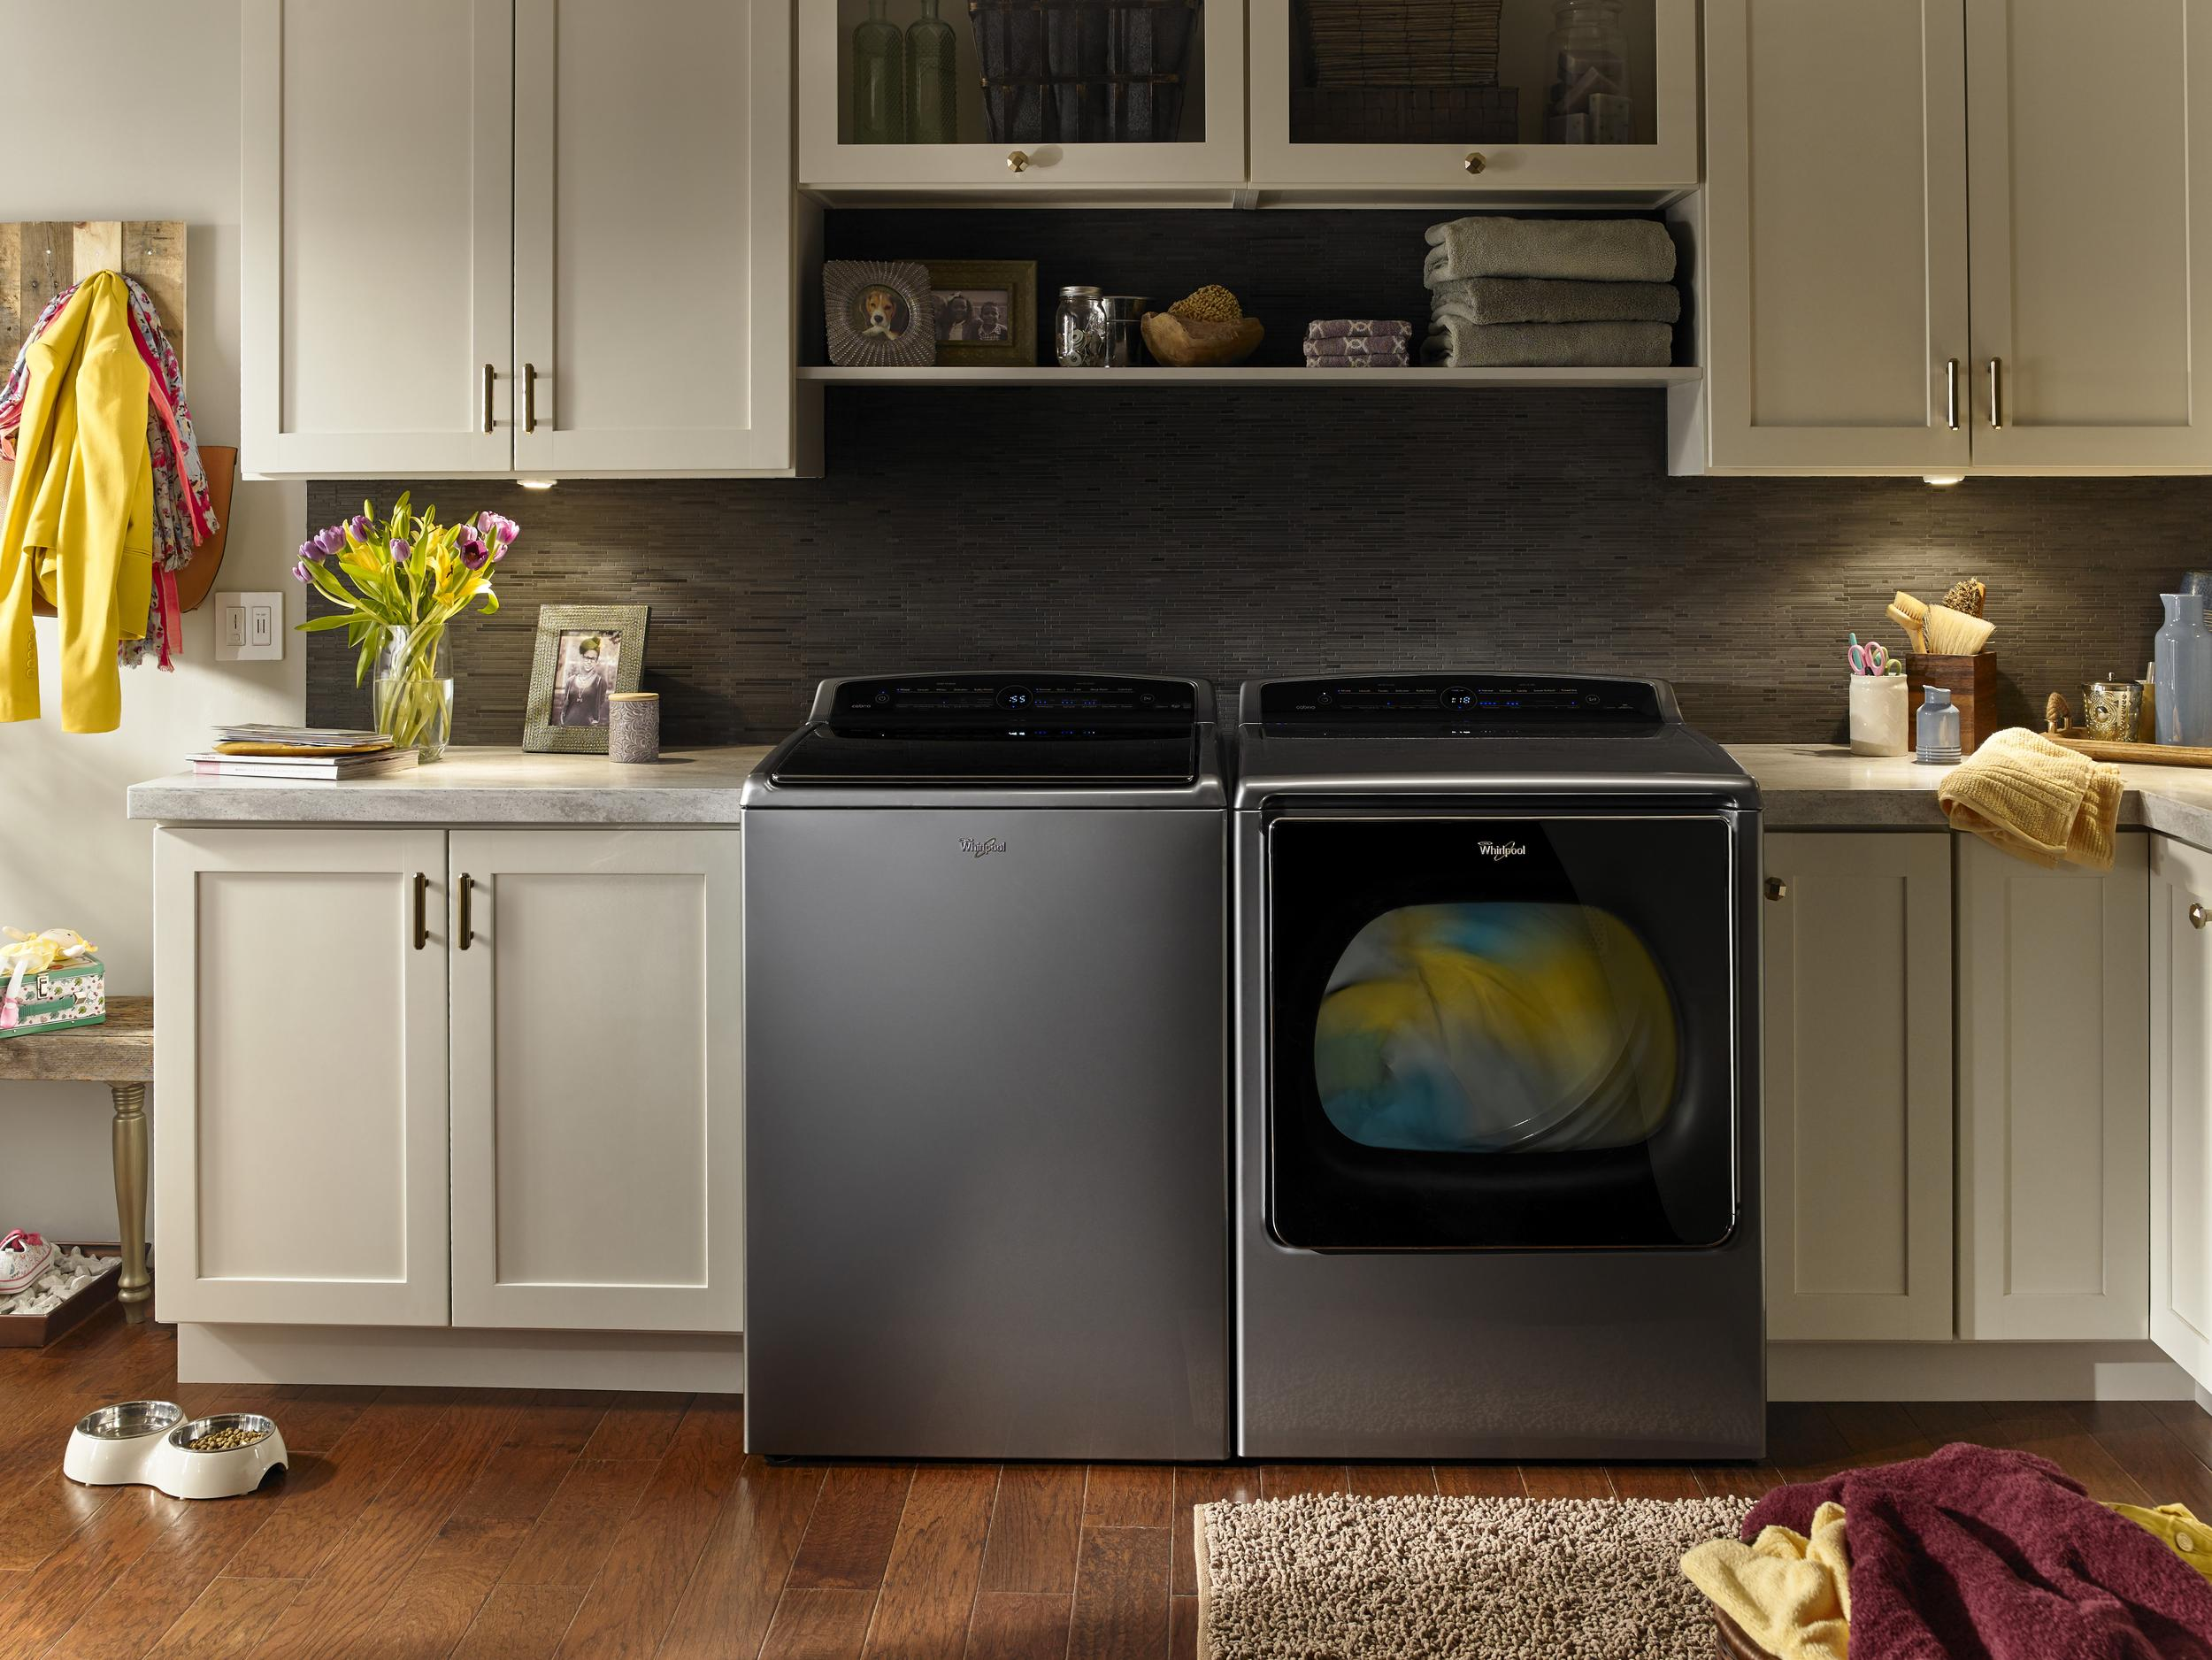 Uncategorized Kitchen Appliance Company whirlpools new amazon dash integrated smart appliances know when you need supplies the dig